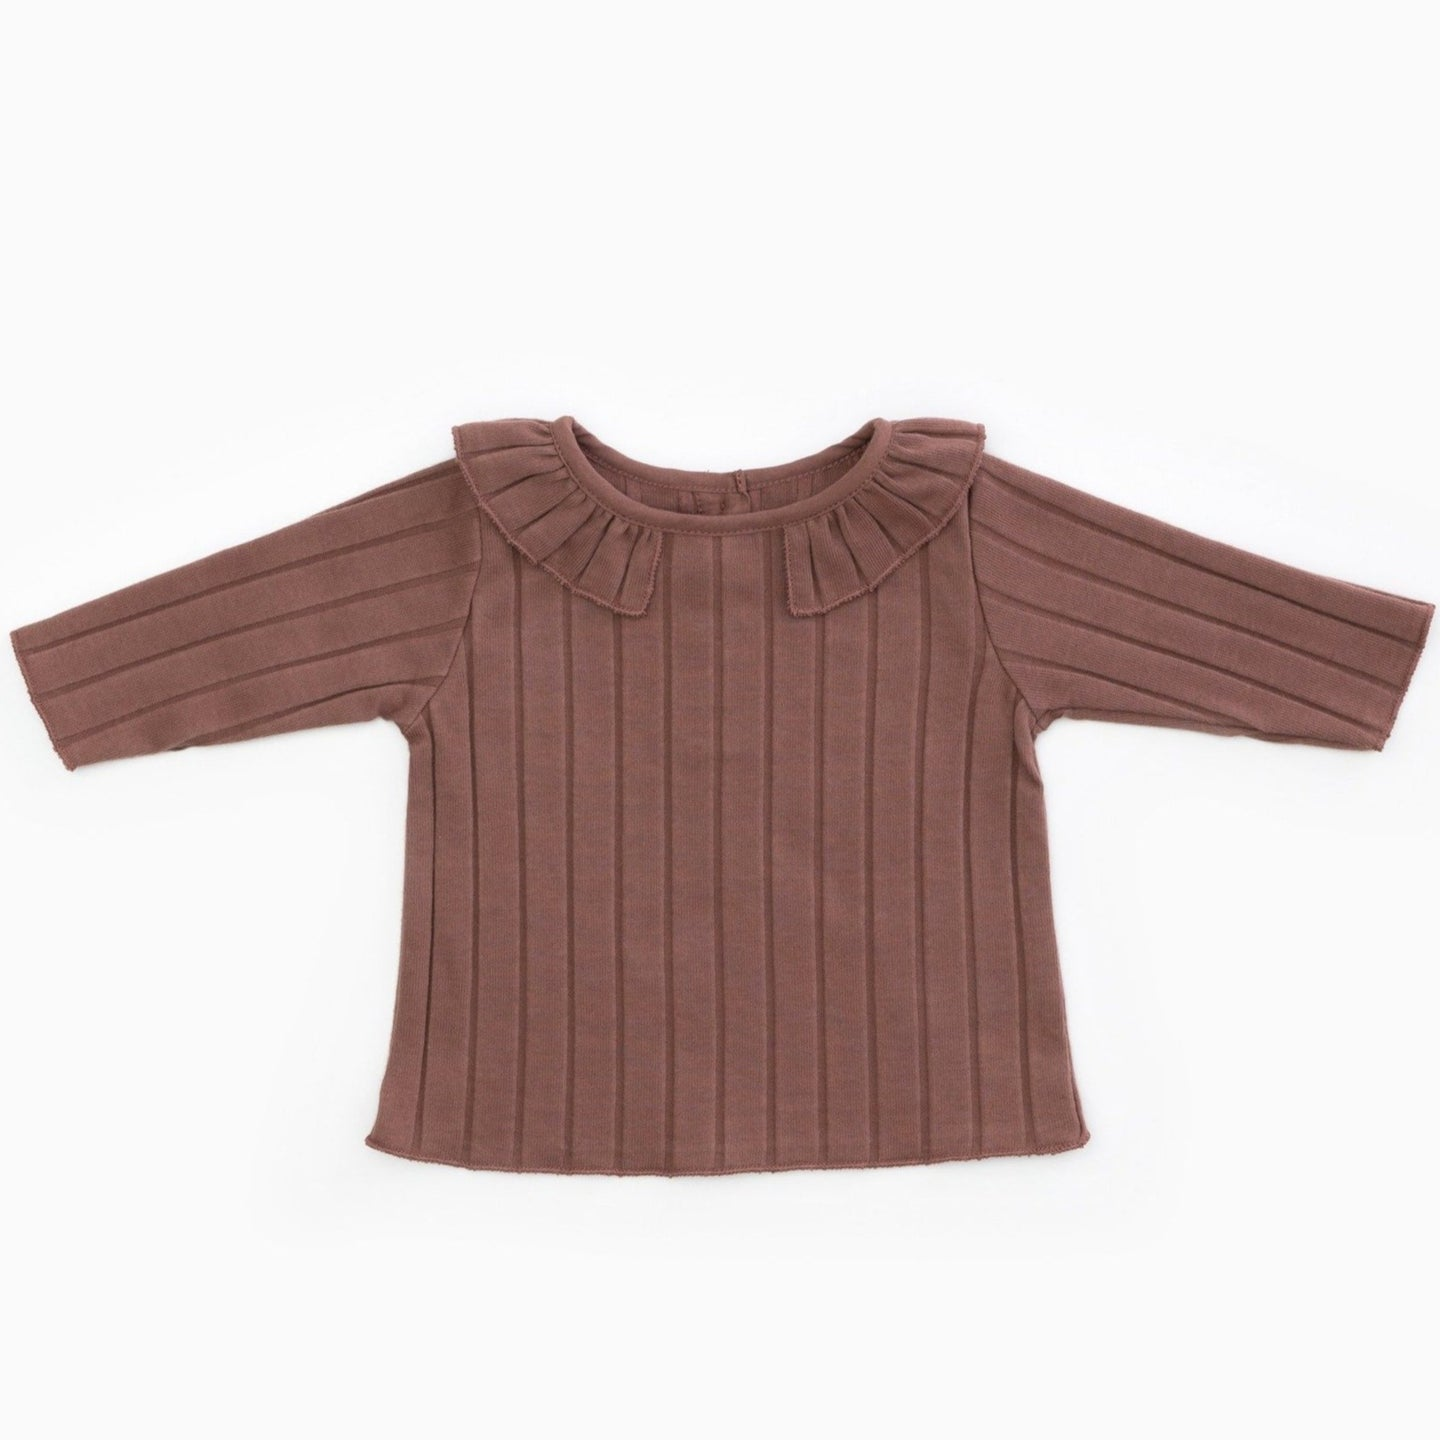 PLAY UP Langarm-Shirt gerippt mit Kragen Organic Cotton